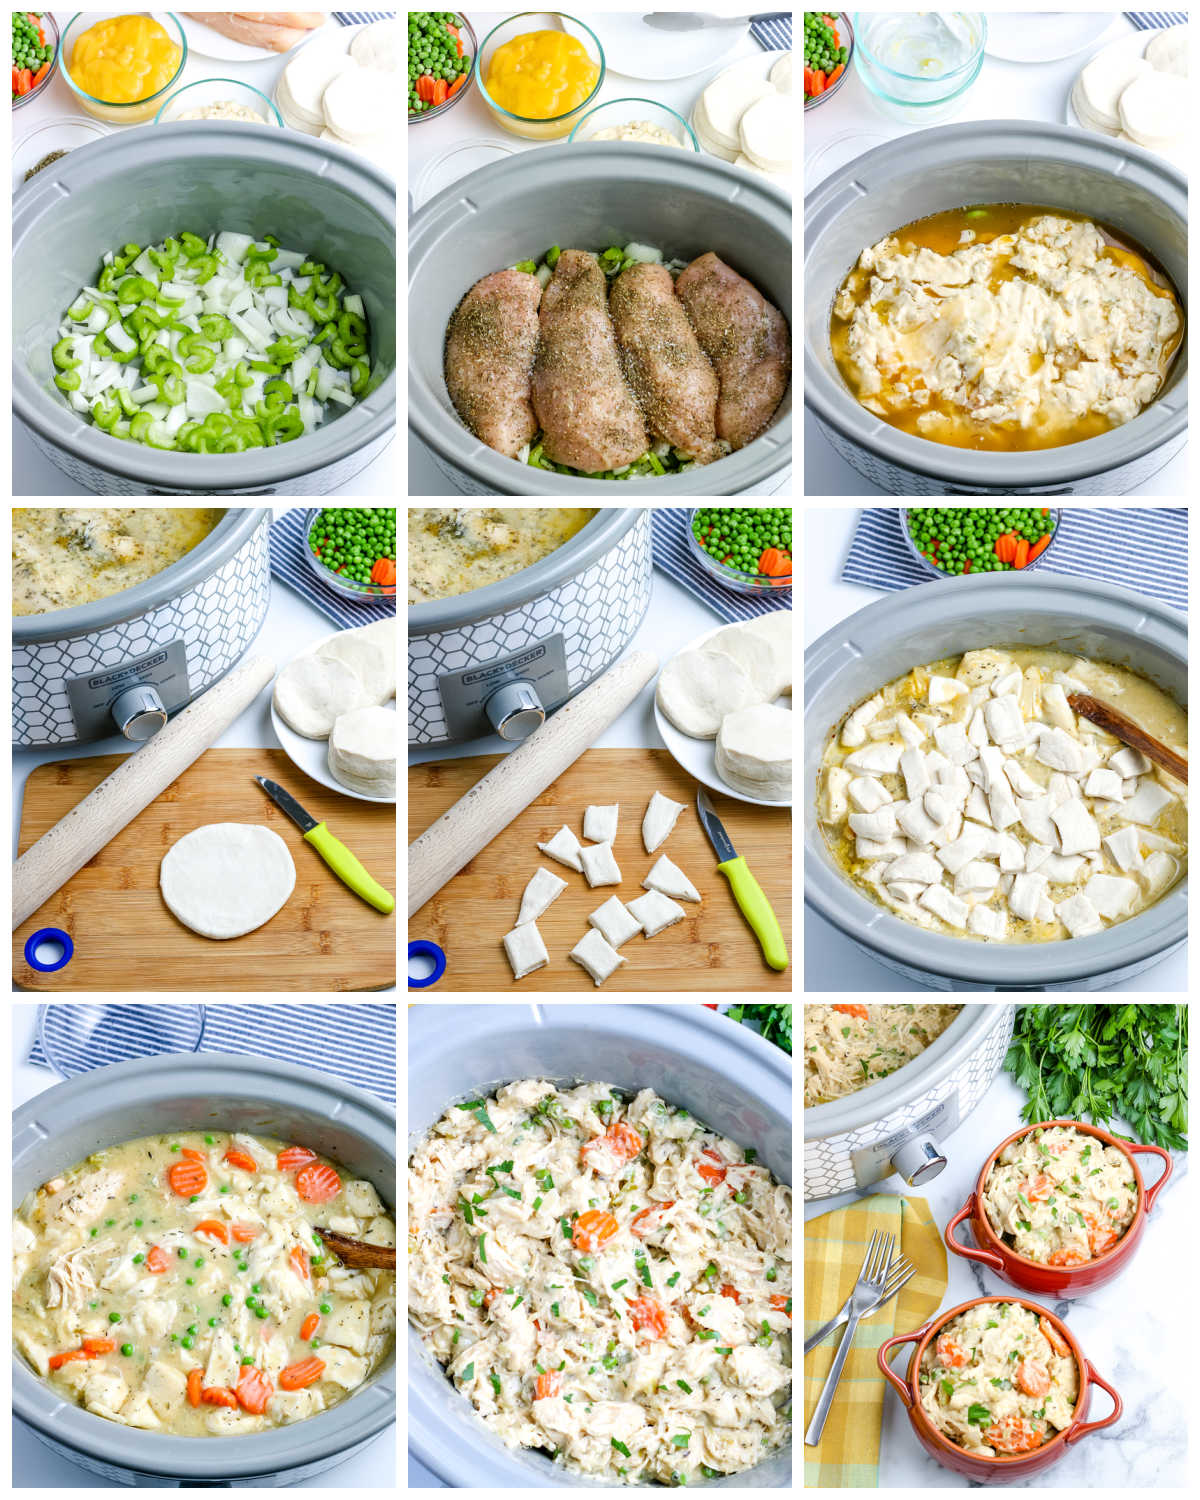 A picture collage of how to make this Crockpot Chicken and Dumplings recipe.